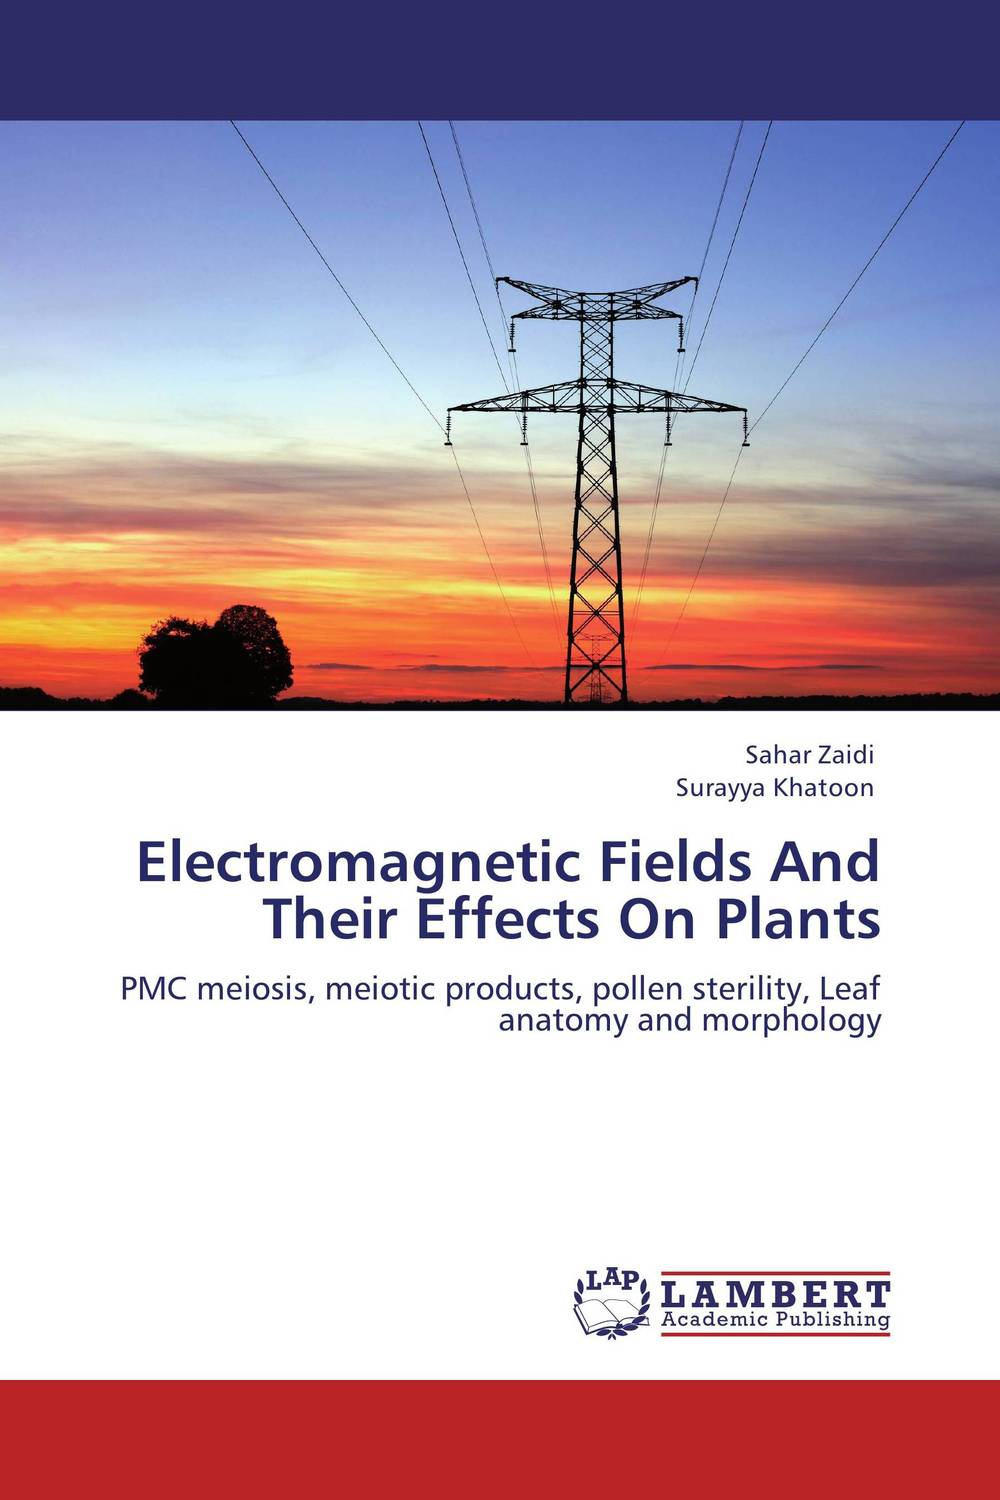 Electromagnetic Fields And Their Effects On Plants ravi maddaly madhumitha haridoss and sai keerthana wuppalapati aggregates of cell lines on agarose hydrogels